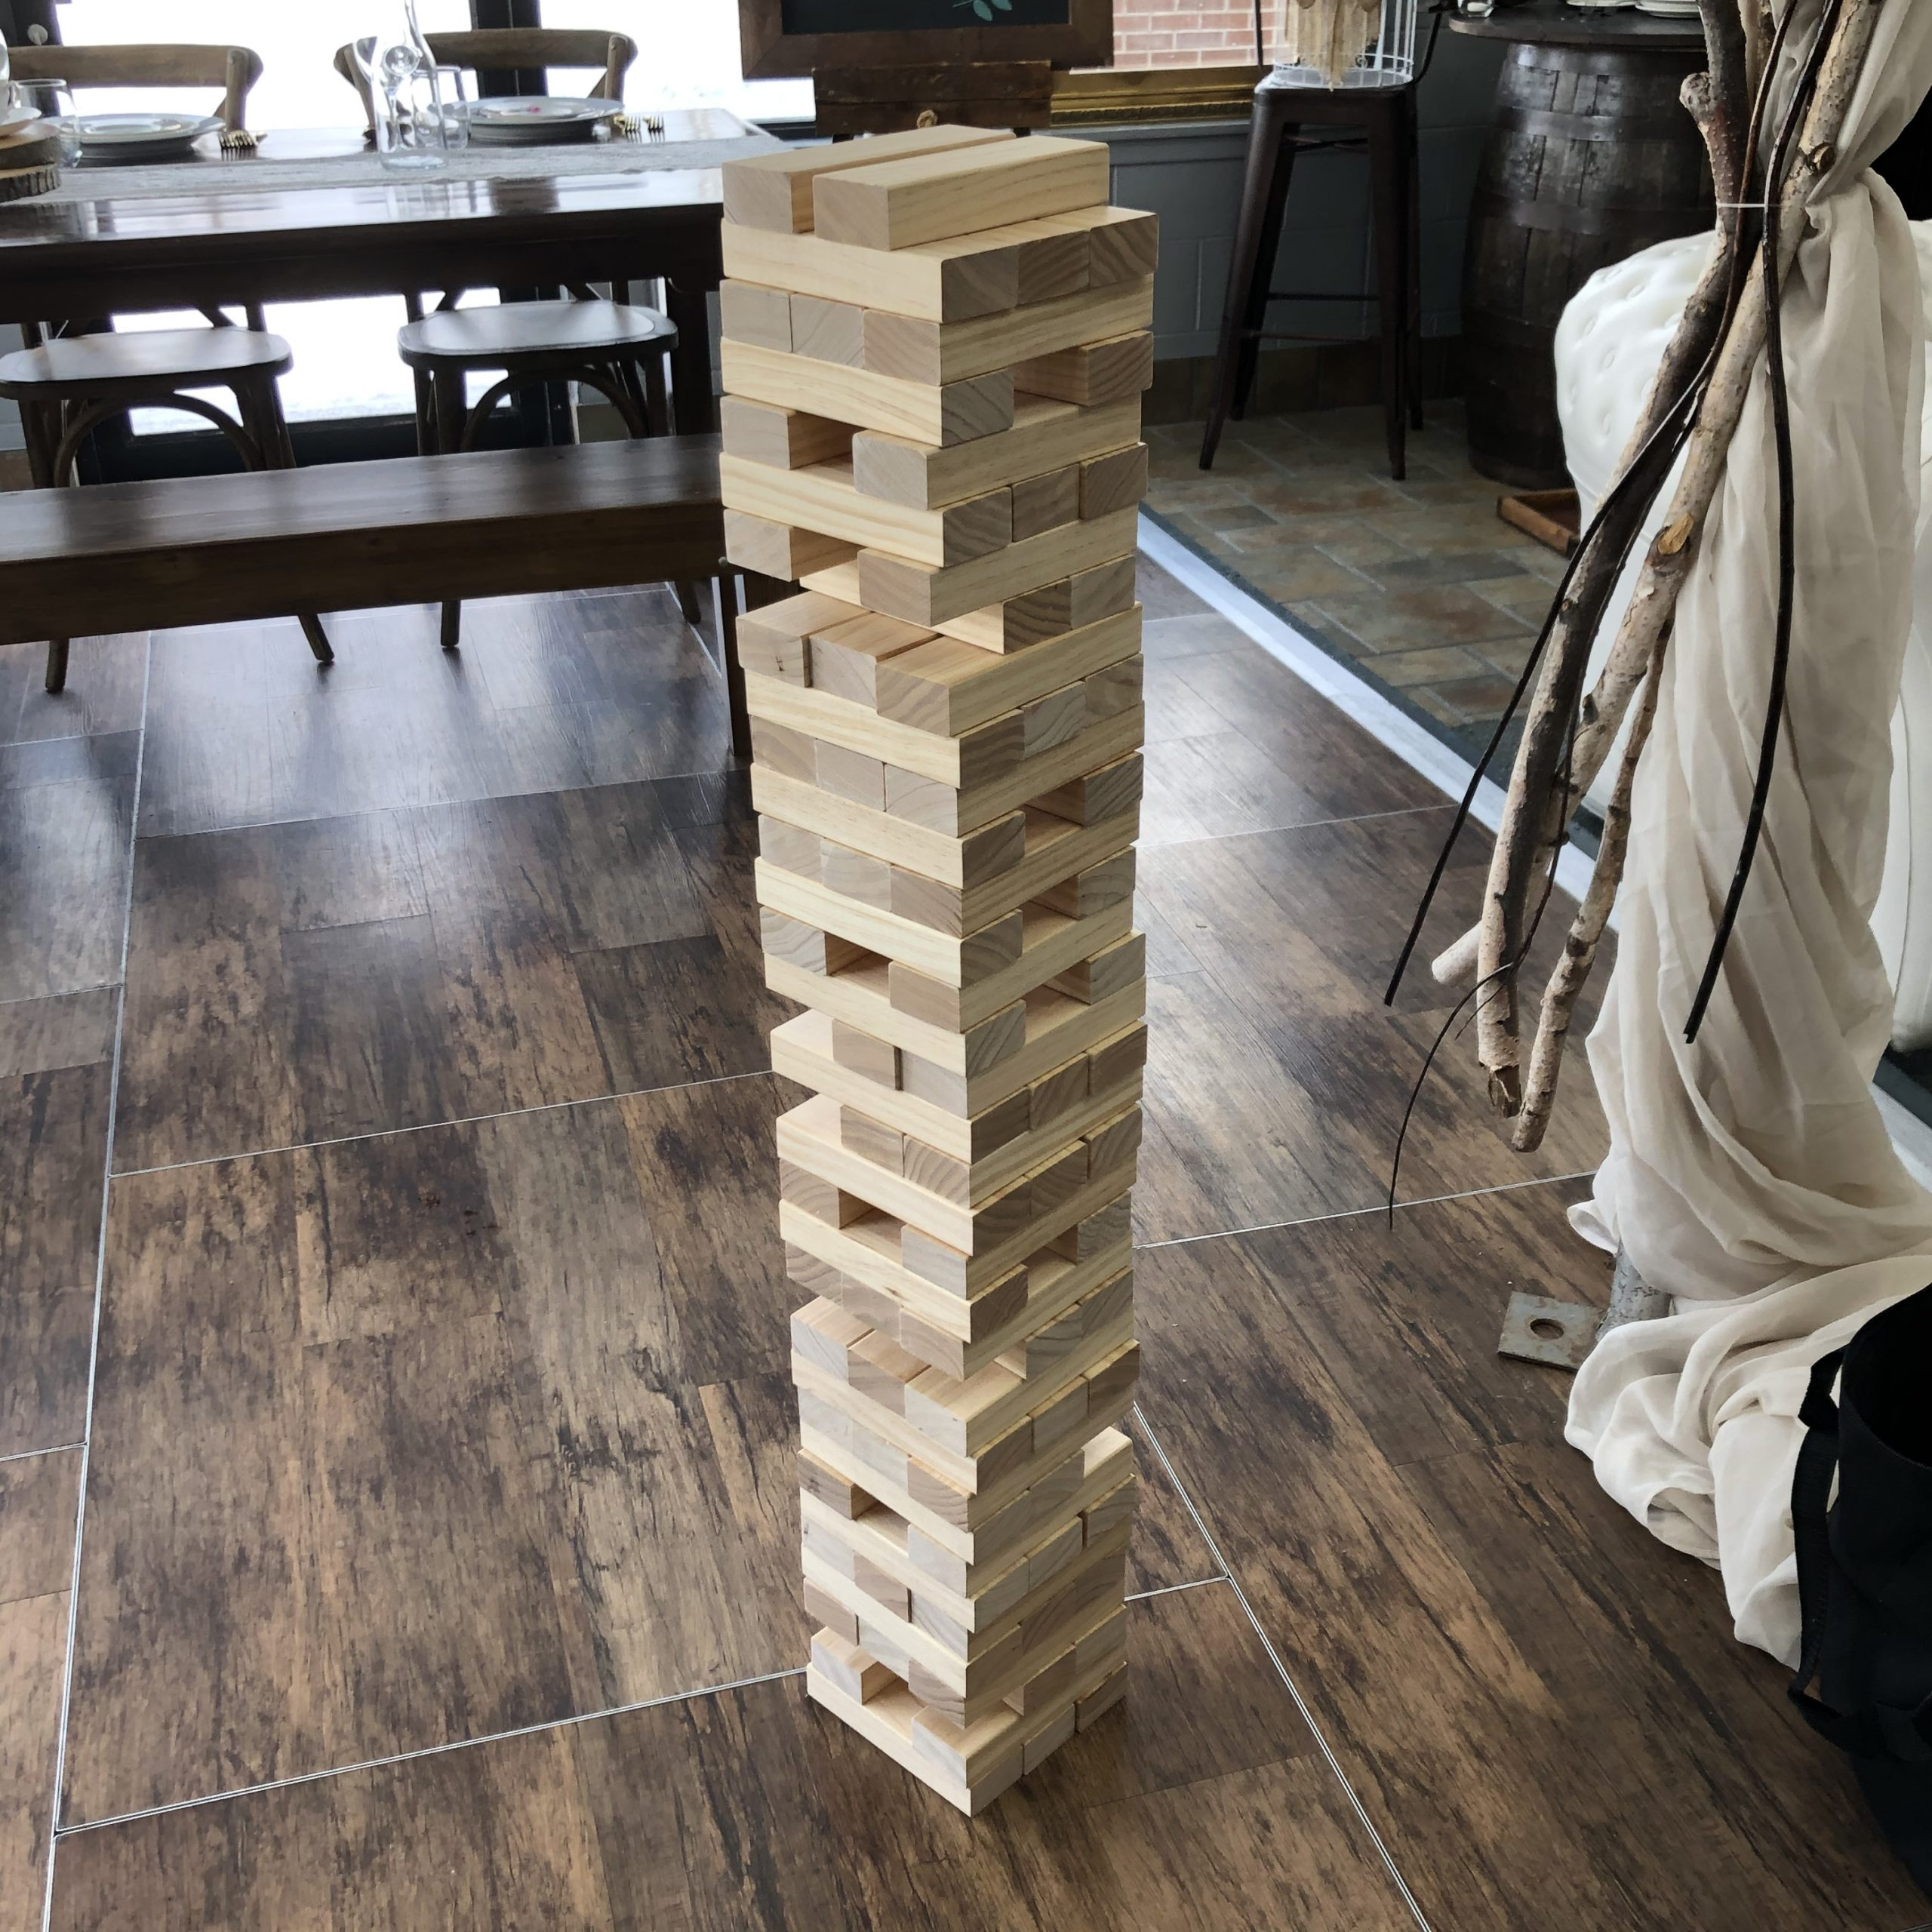 Jenga Tower Image